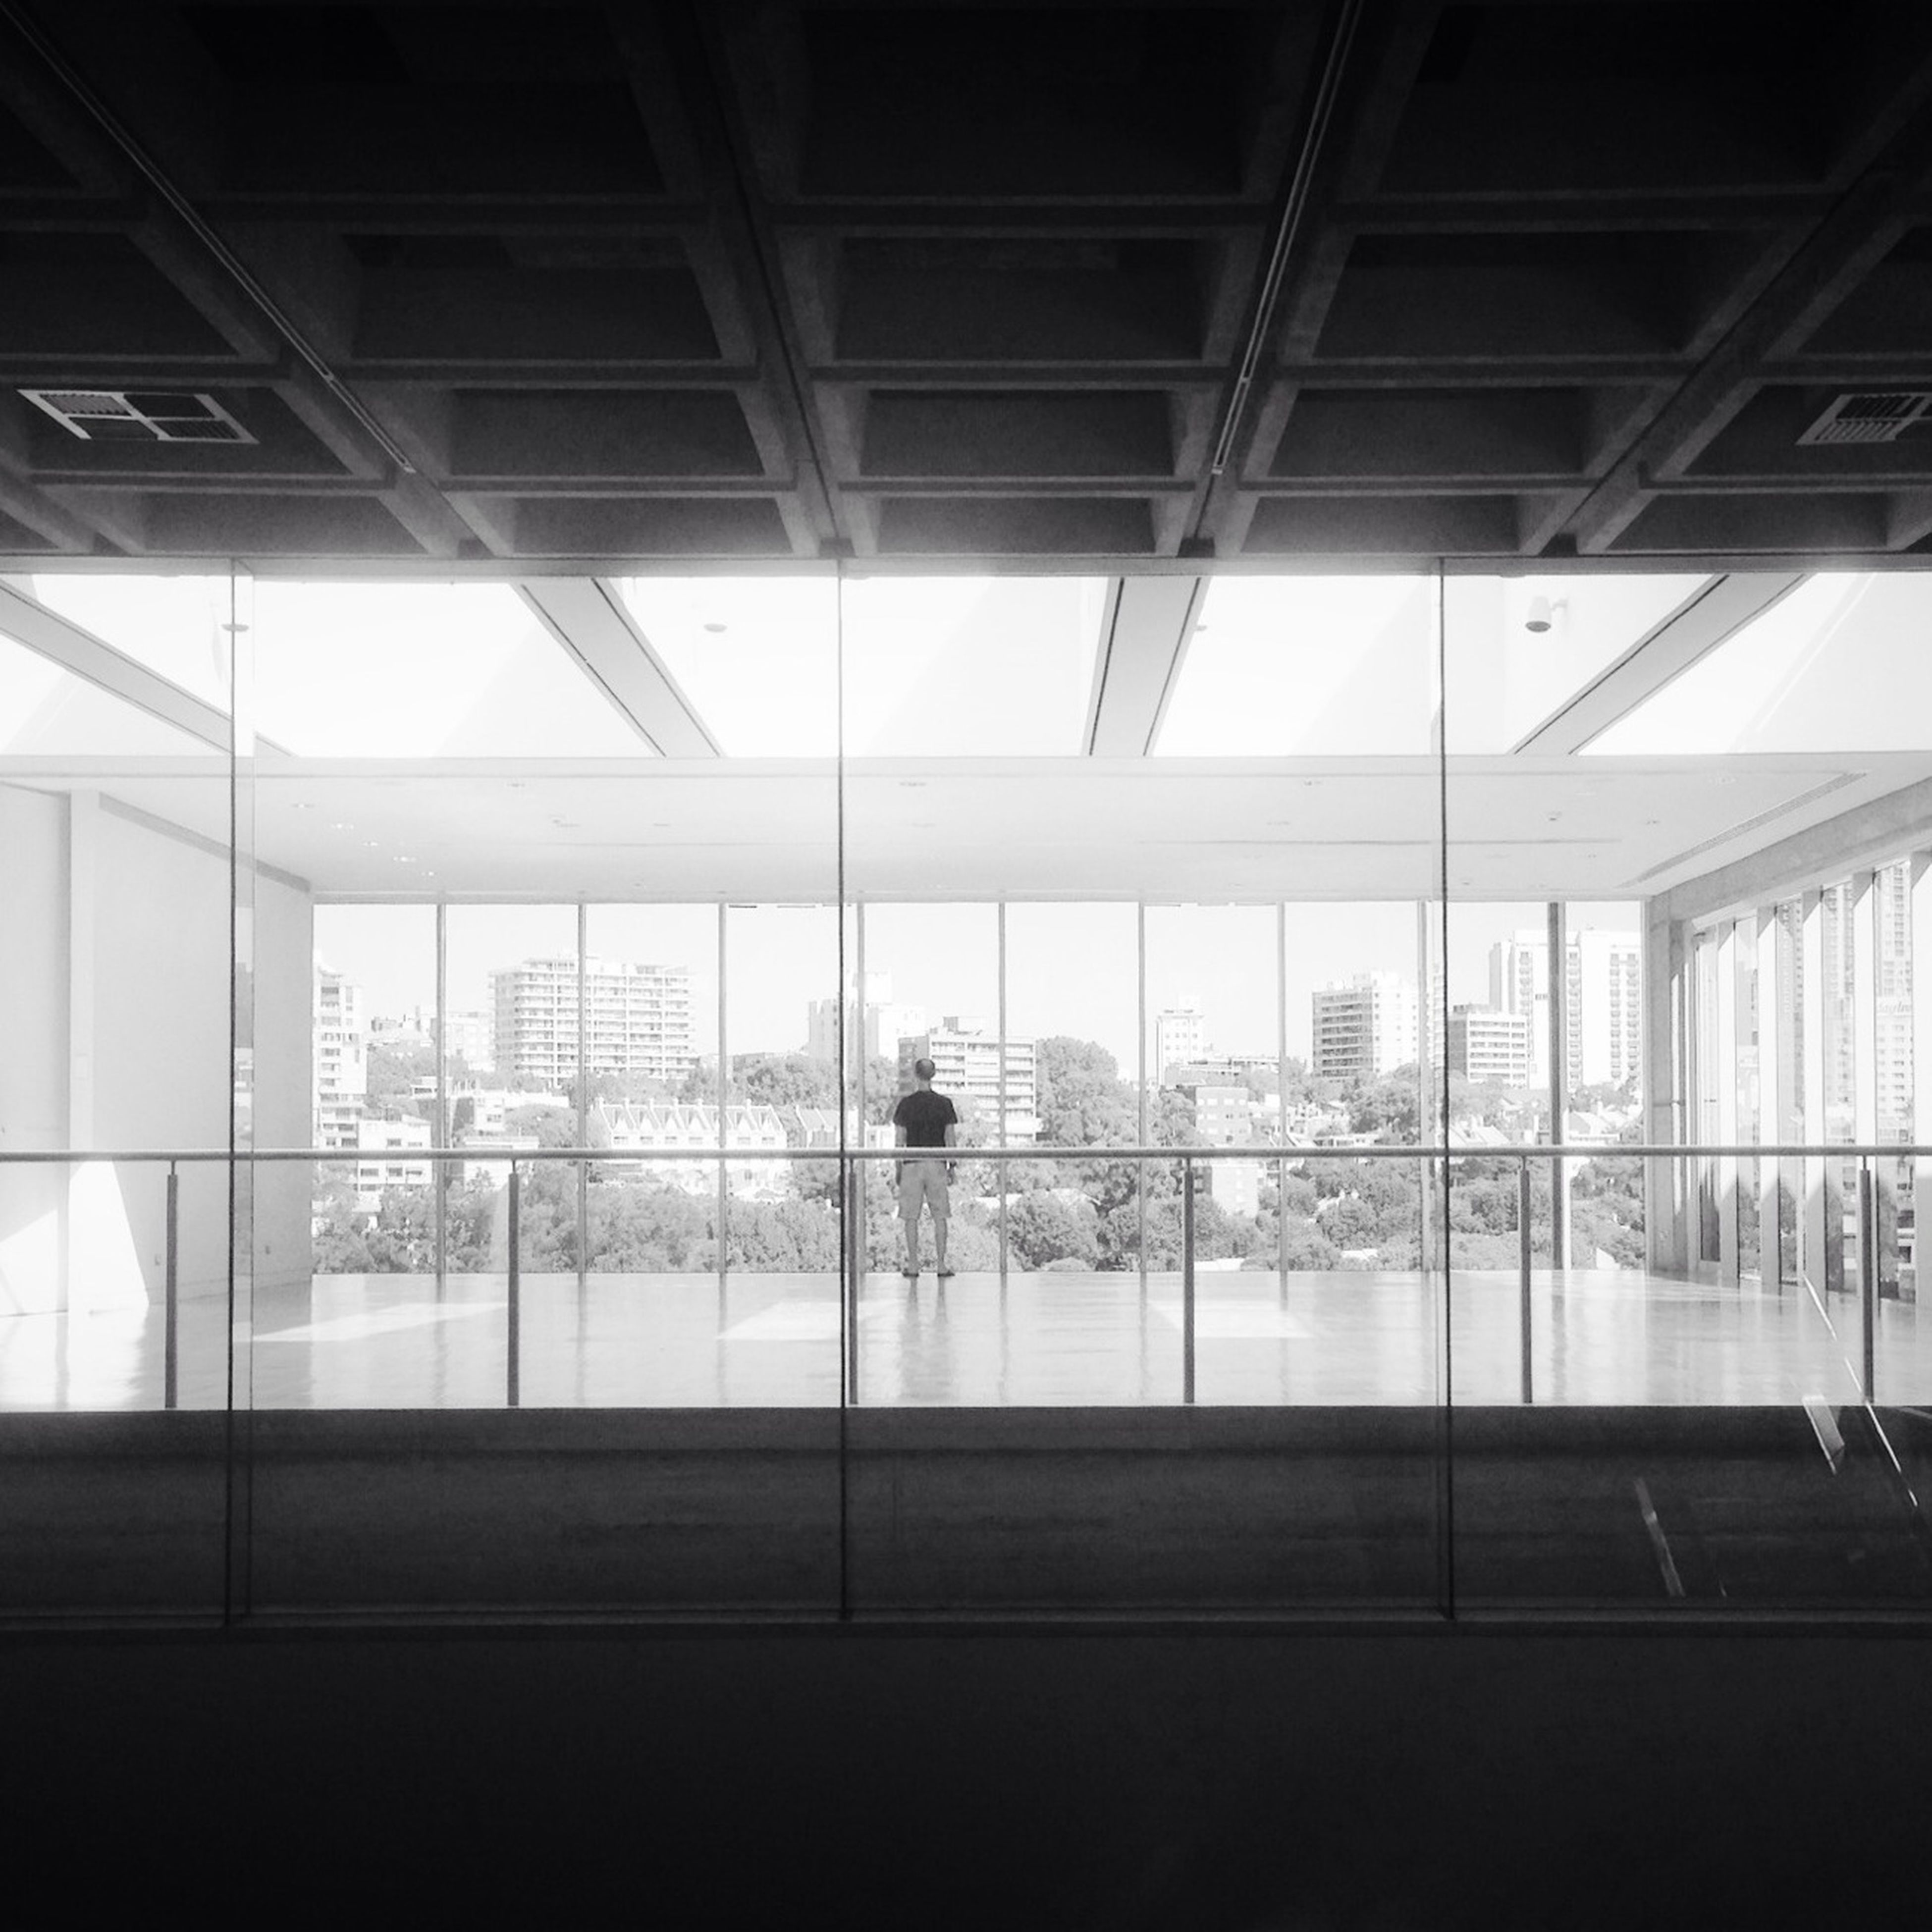 indoors, glass - material, window, architecture, built structure, transparent, modern, glass, building exterior, city, building, reflection, ceiling, day, pattern, no people, tree, geometric shape, sunlight, sky